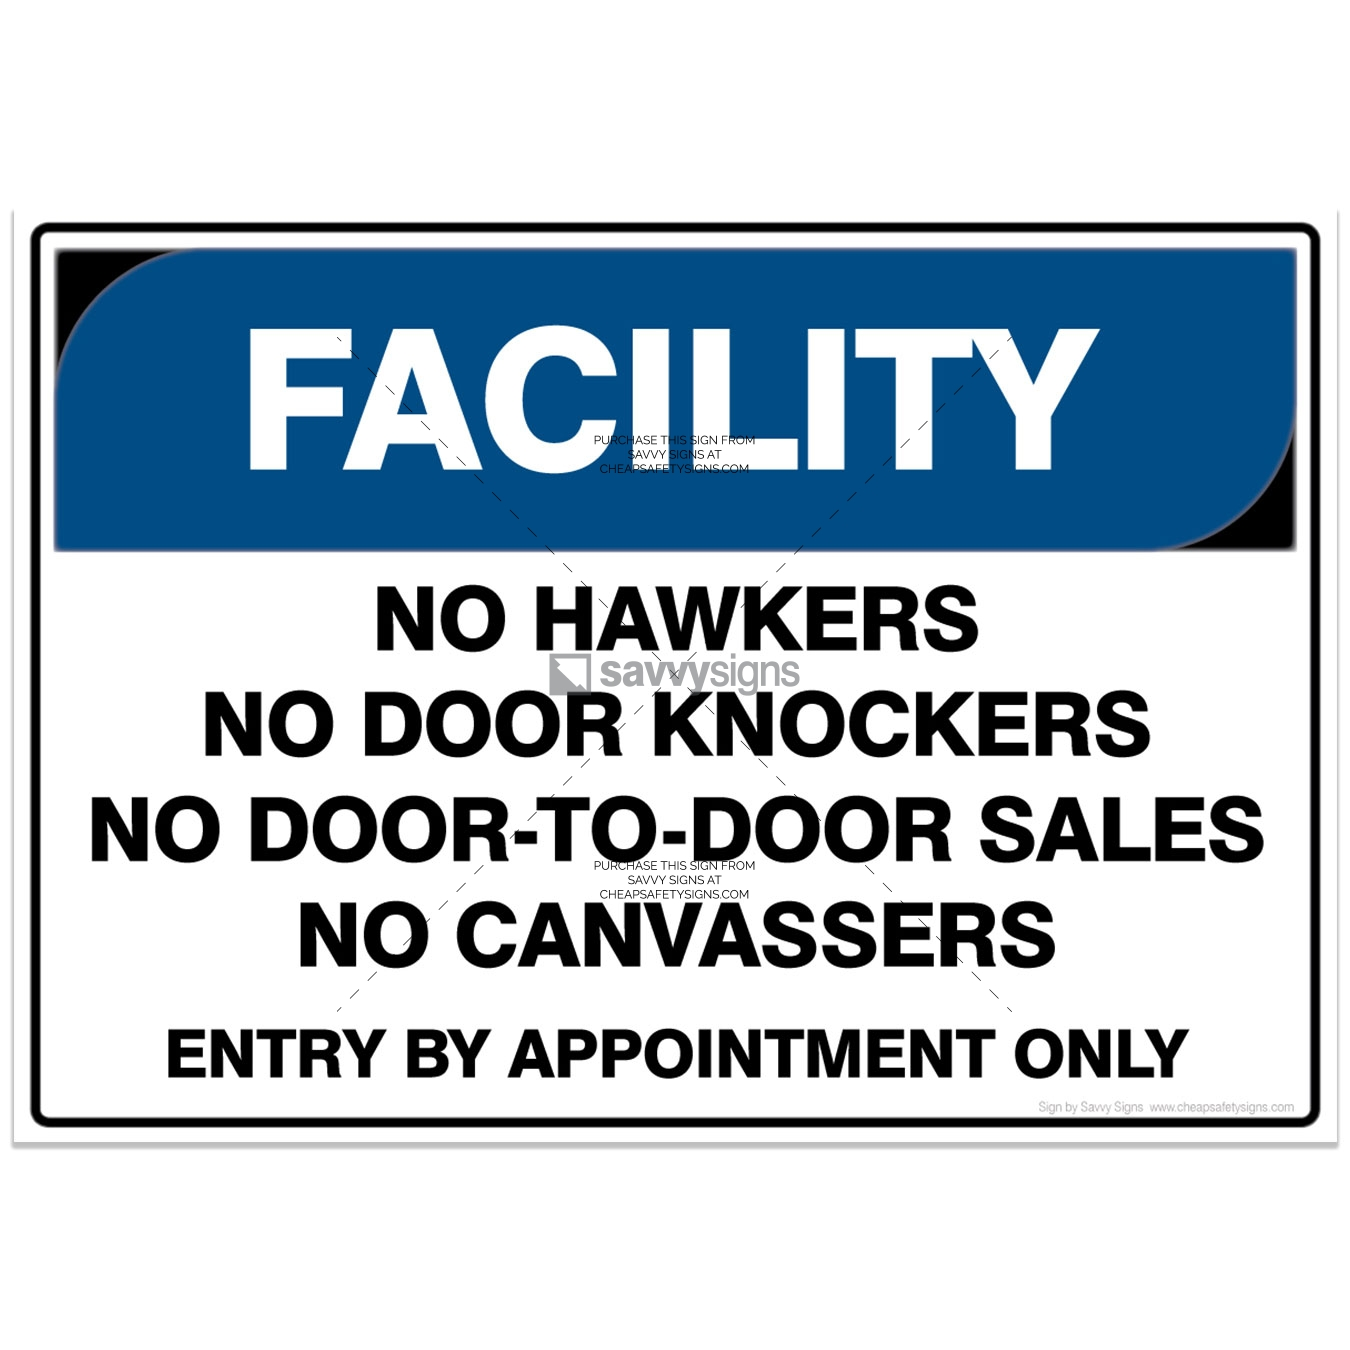 SSFAC3055-FACILITY-Workplace-Safety-Signs_Savvy-Signs_v4